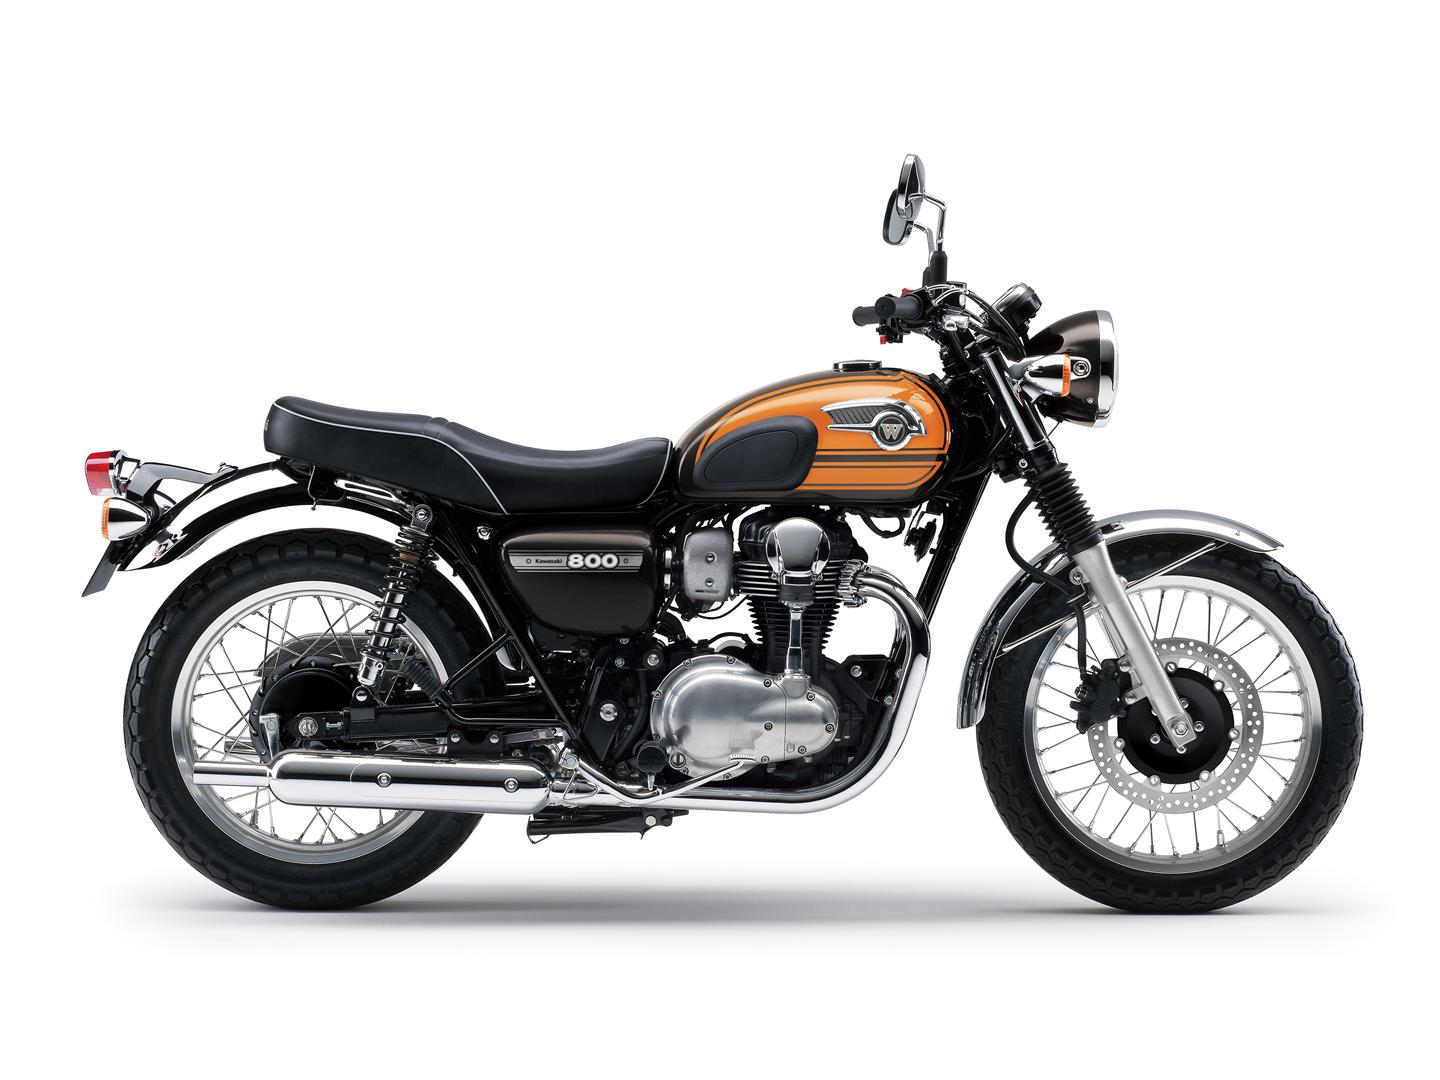 Kawasaki W800 Bids Farewell, Sacked by the Euro 4 Emission Standards